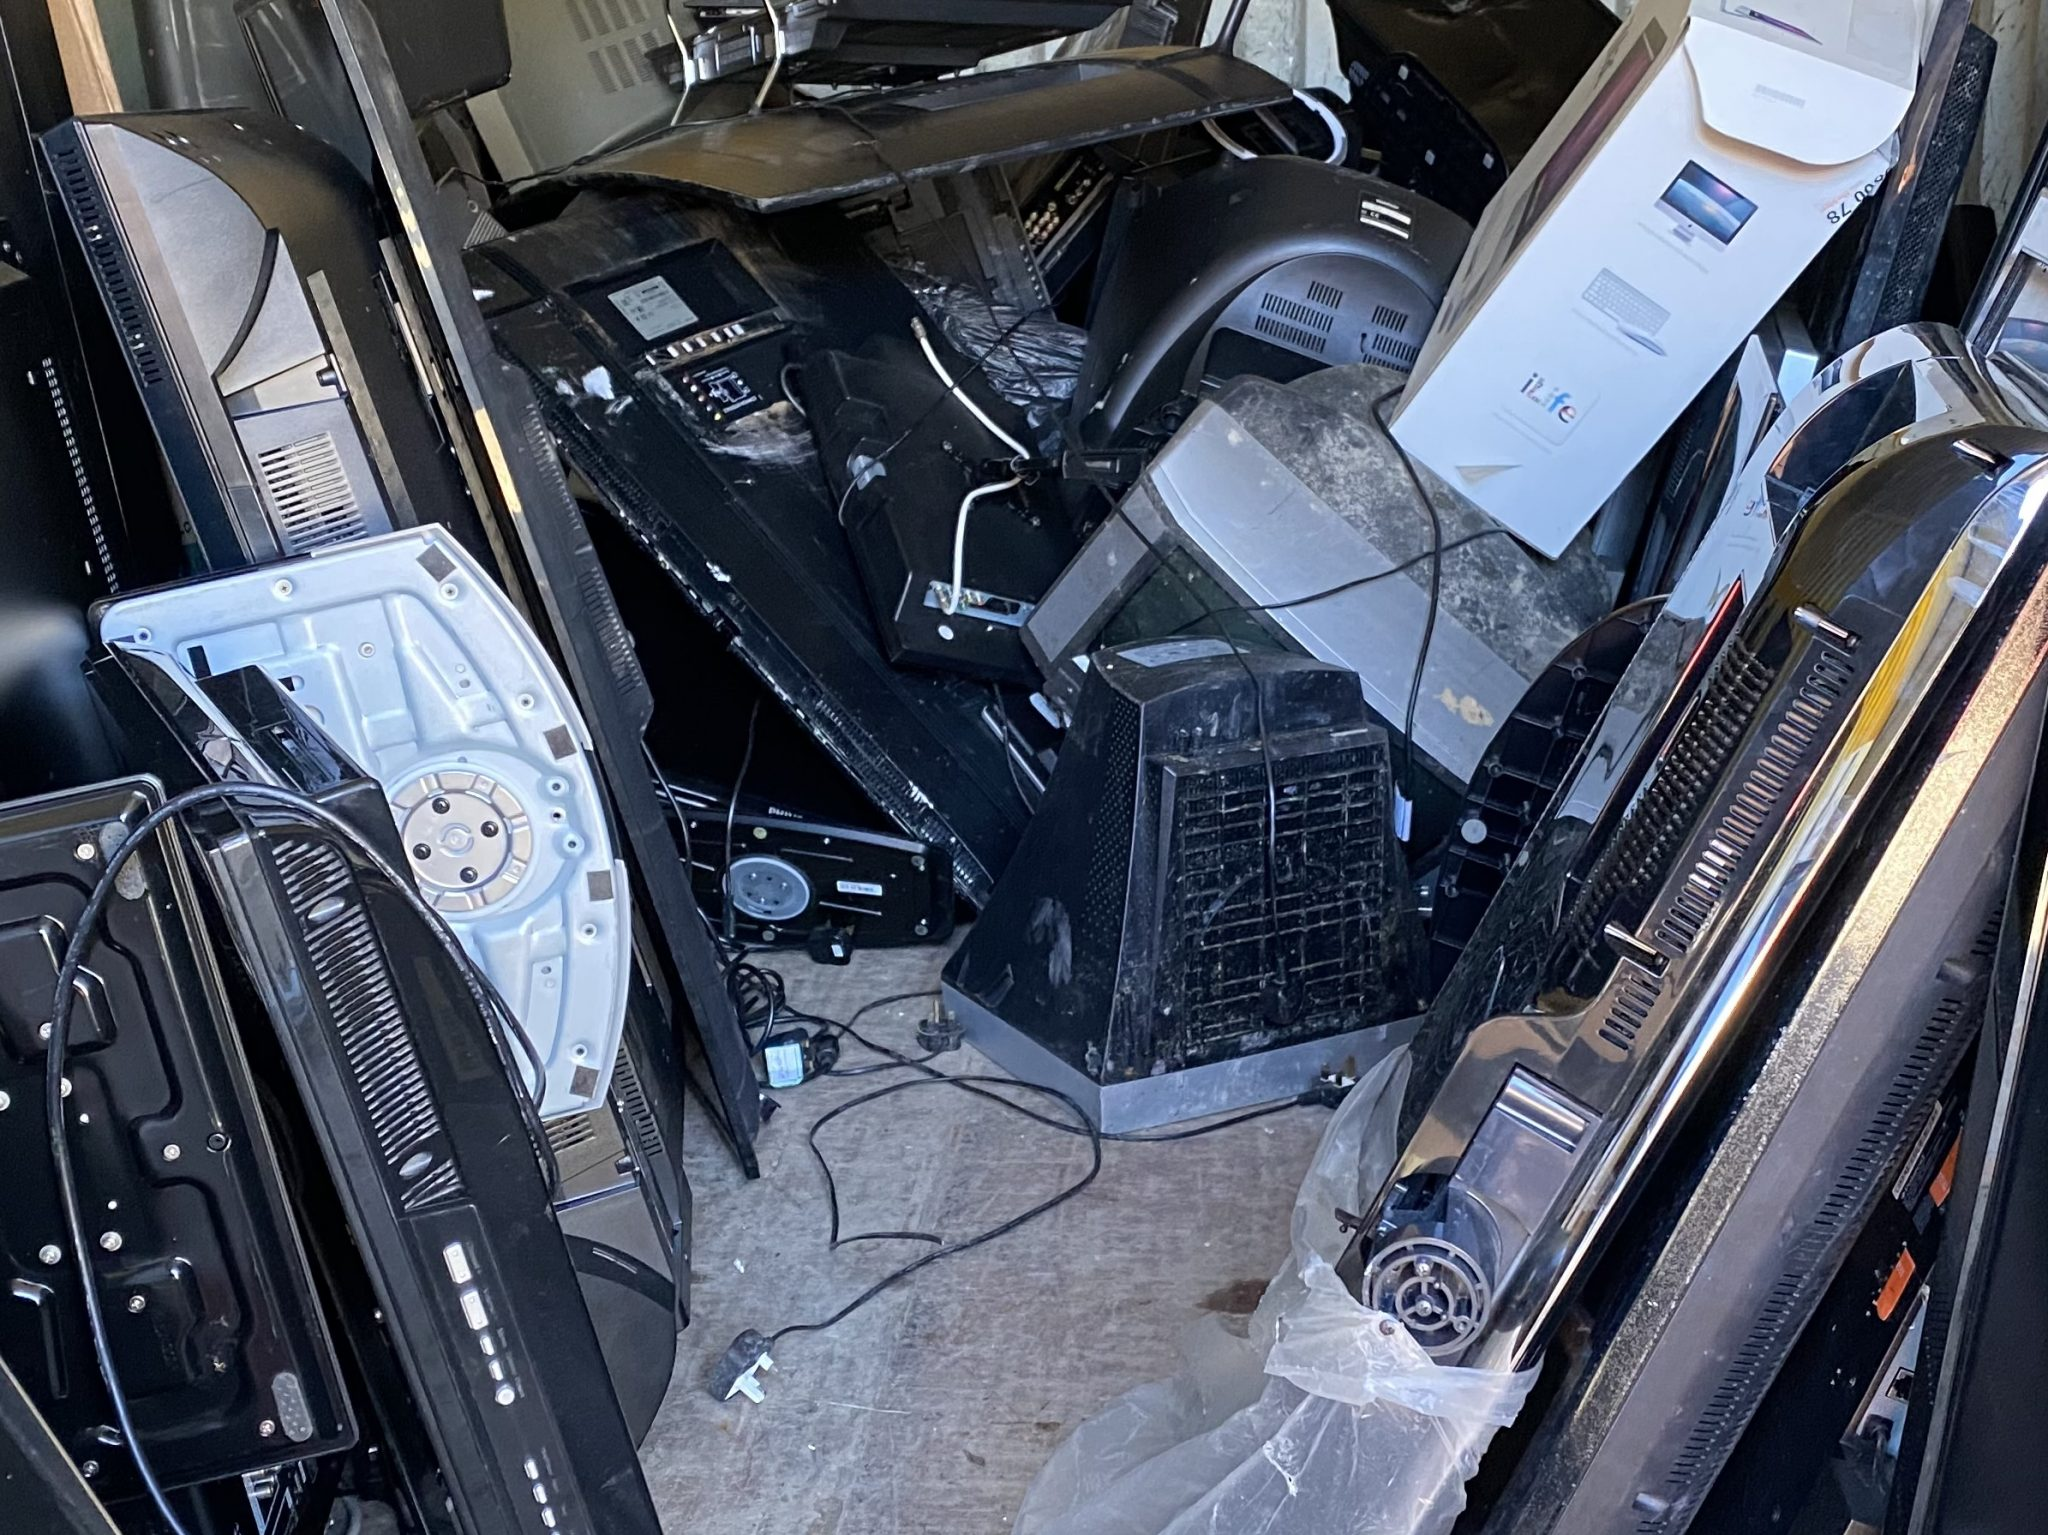 Uk government is looking to improve e-waste collection